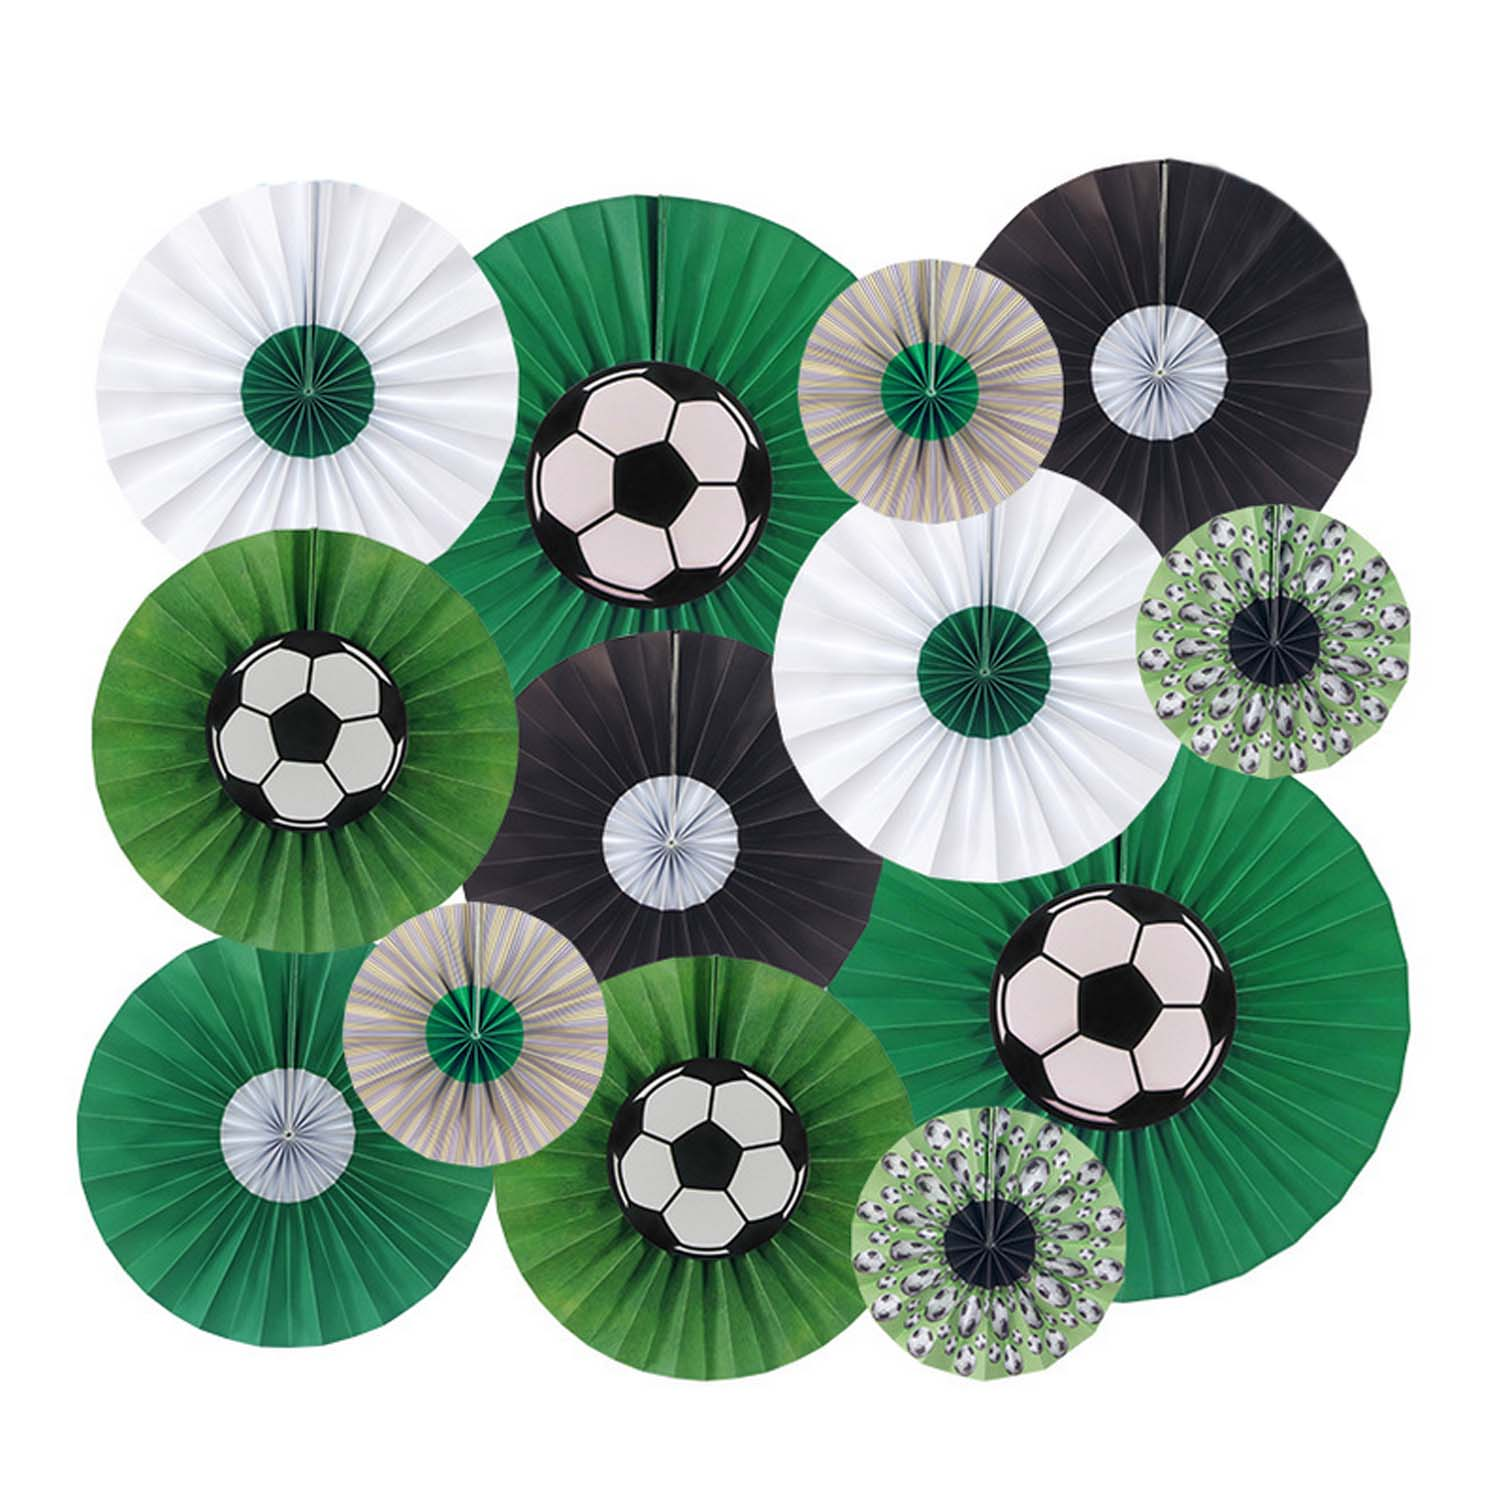 13pcs Soccer Theme Birthday Party Decoration Kit Round Green White Black Football Hanging Paper Flower Fan Origami Set